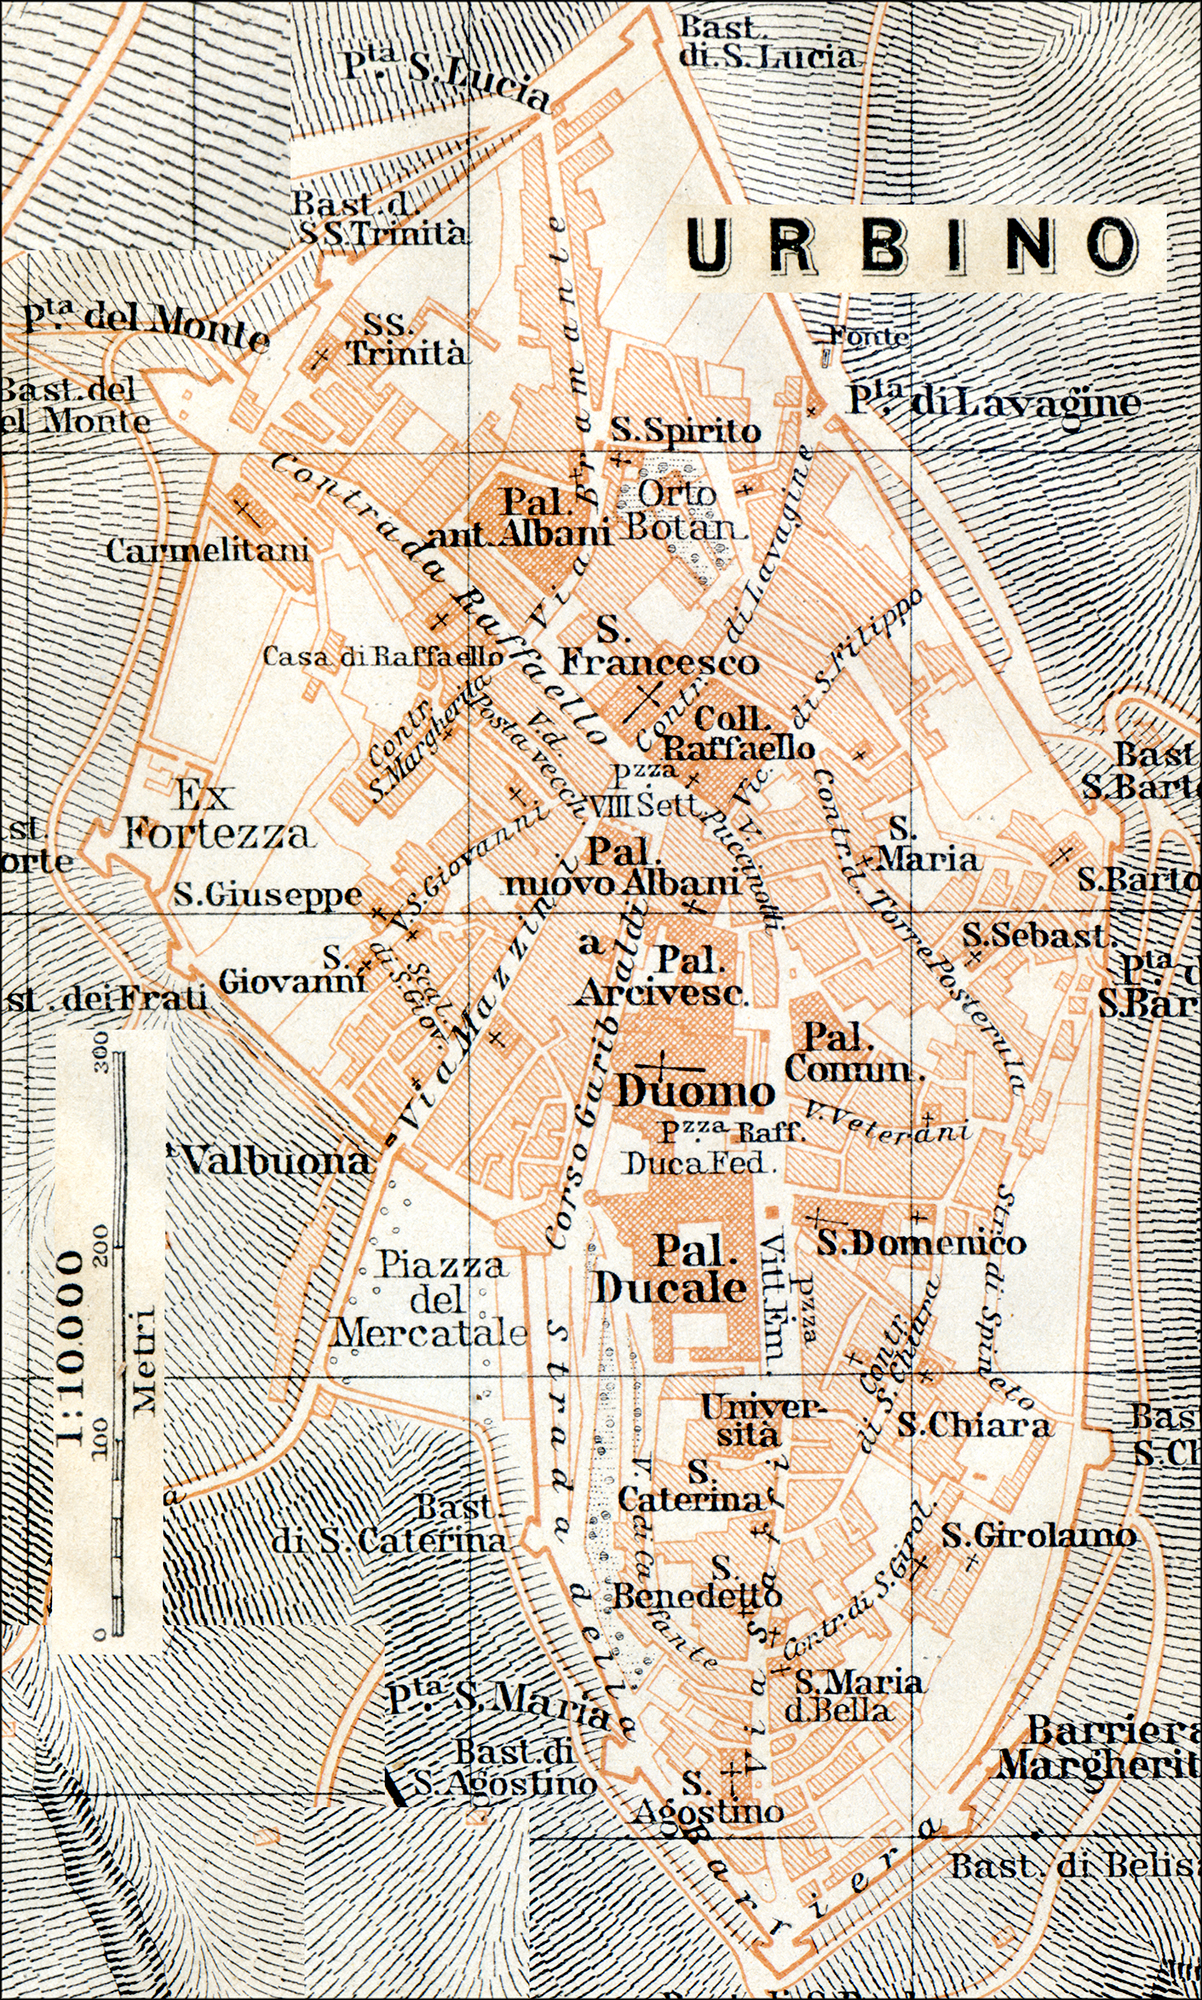 Free maps of Northern Italy